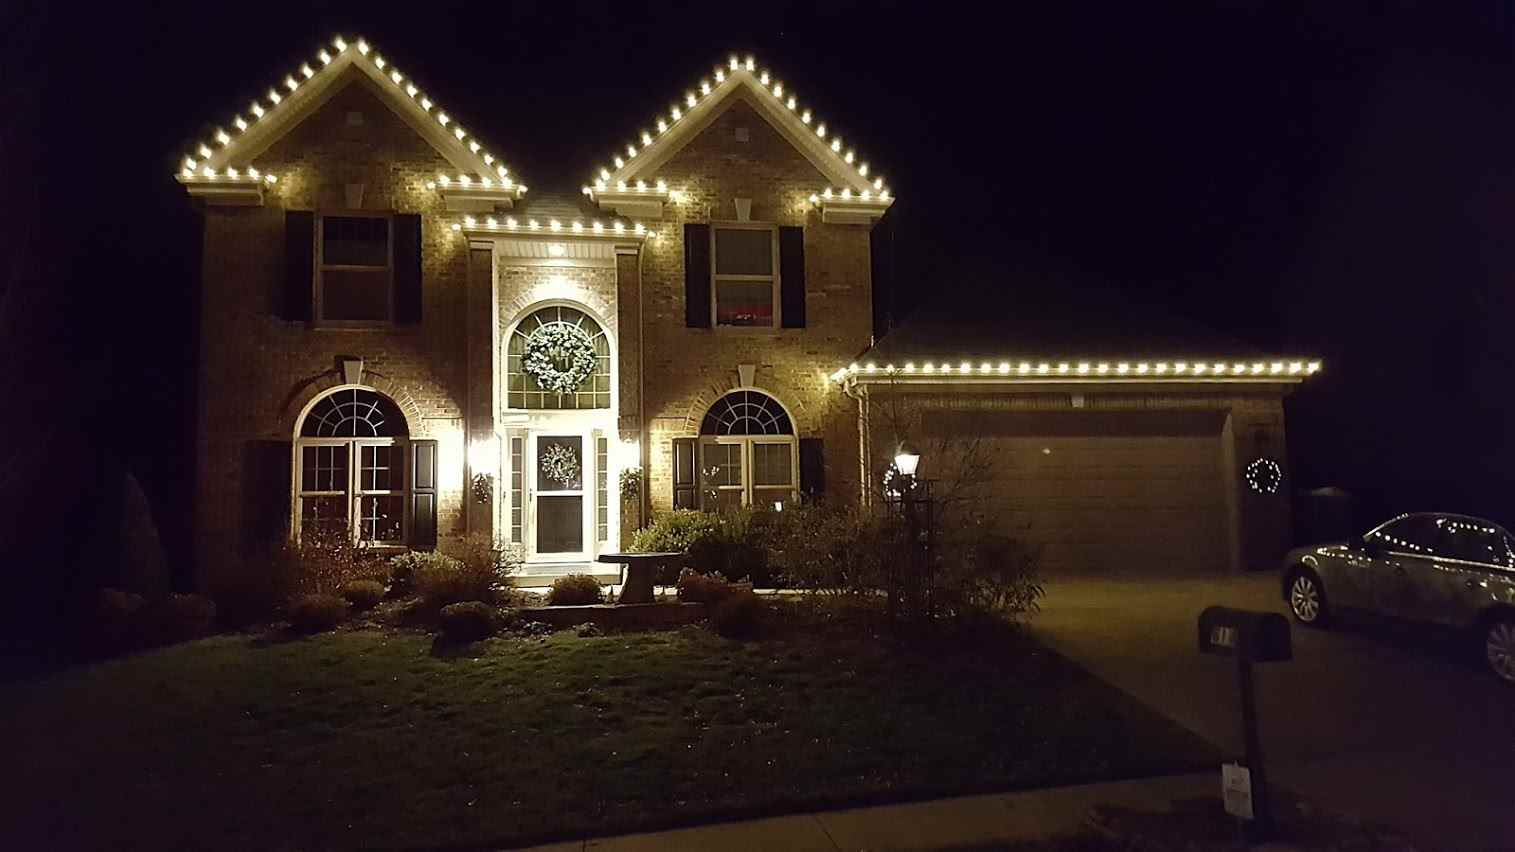 House With Holiday Lights on Peaks